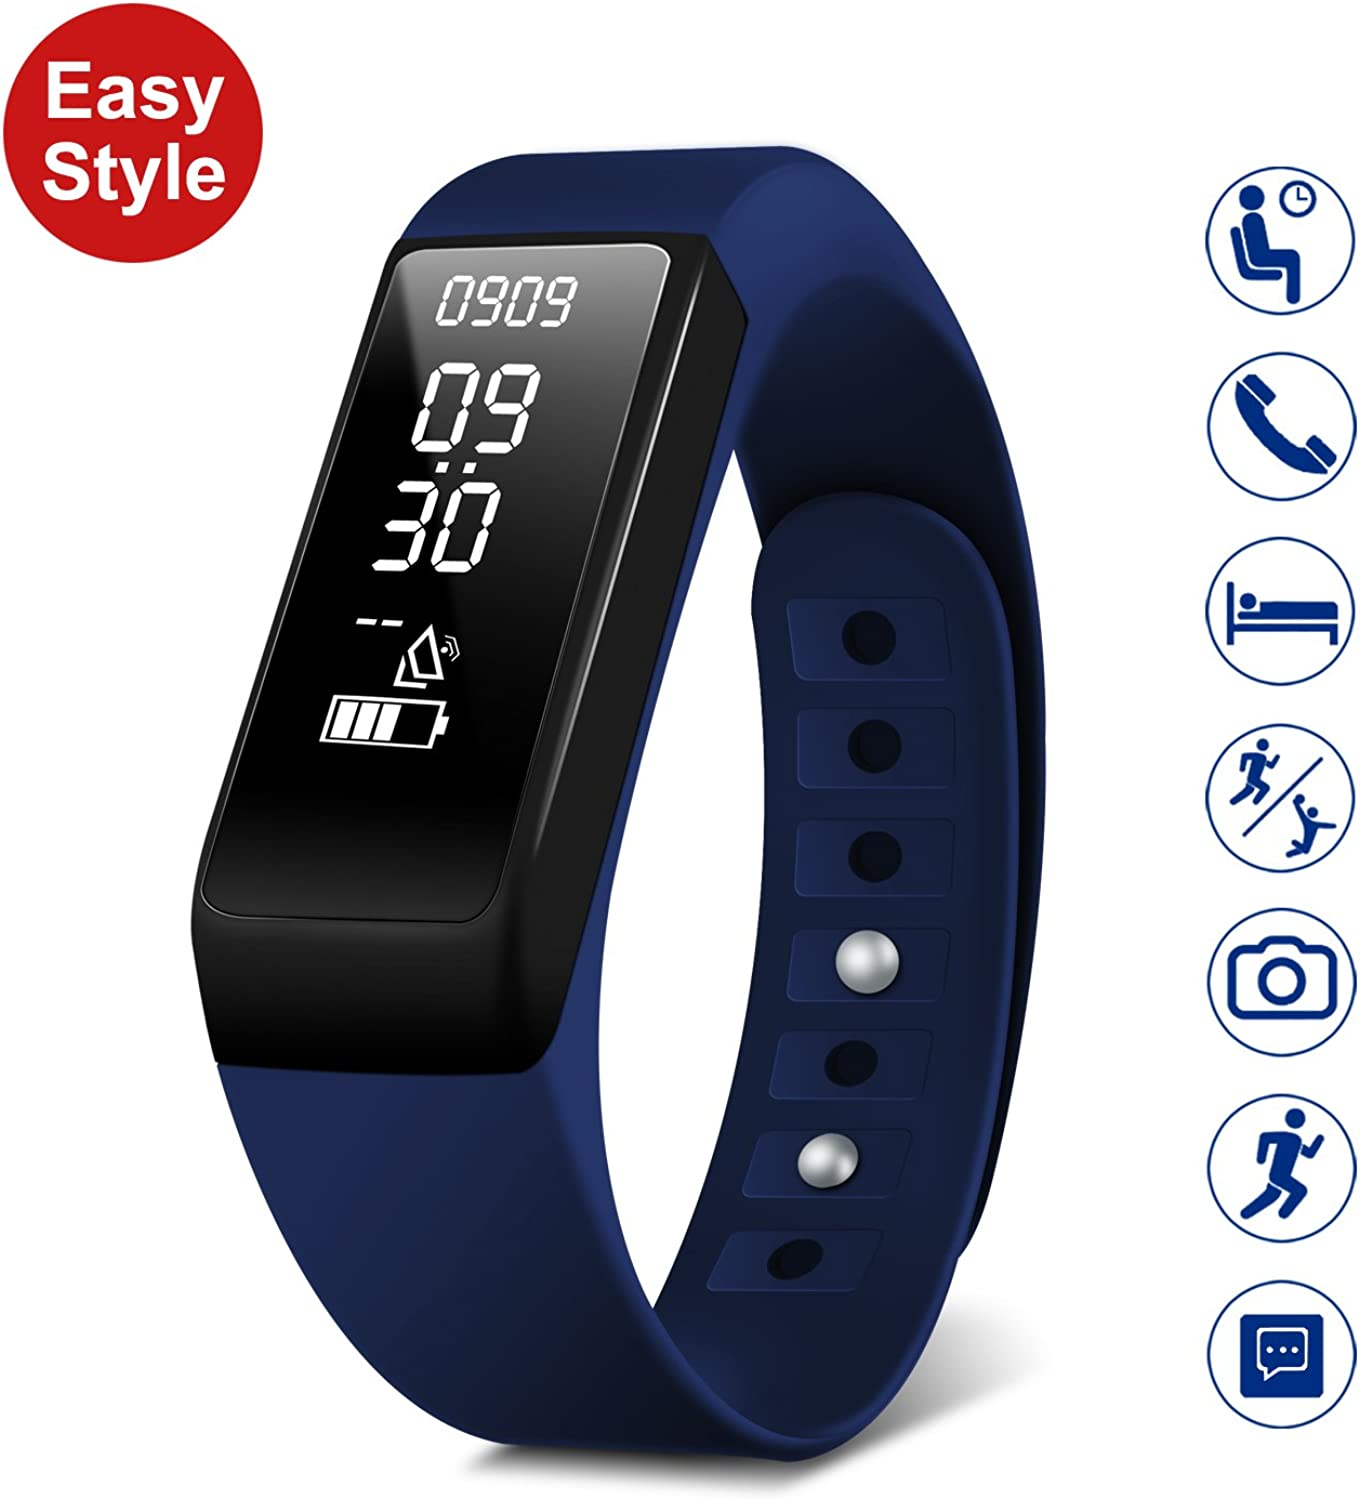 HEIHEI Smart Fitness Tracker Watch I5Plus Waterproof Activity Tracker, Step Calories Counters, Sleep Monitor, Call SMS Reminder, Fitness Watch USB Charging for Women Men Kids (blueee)